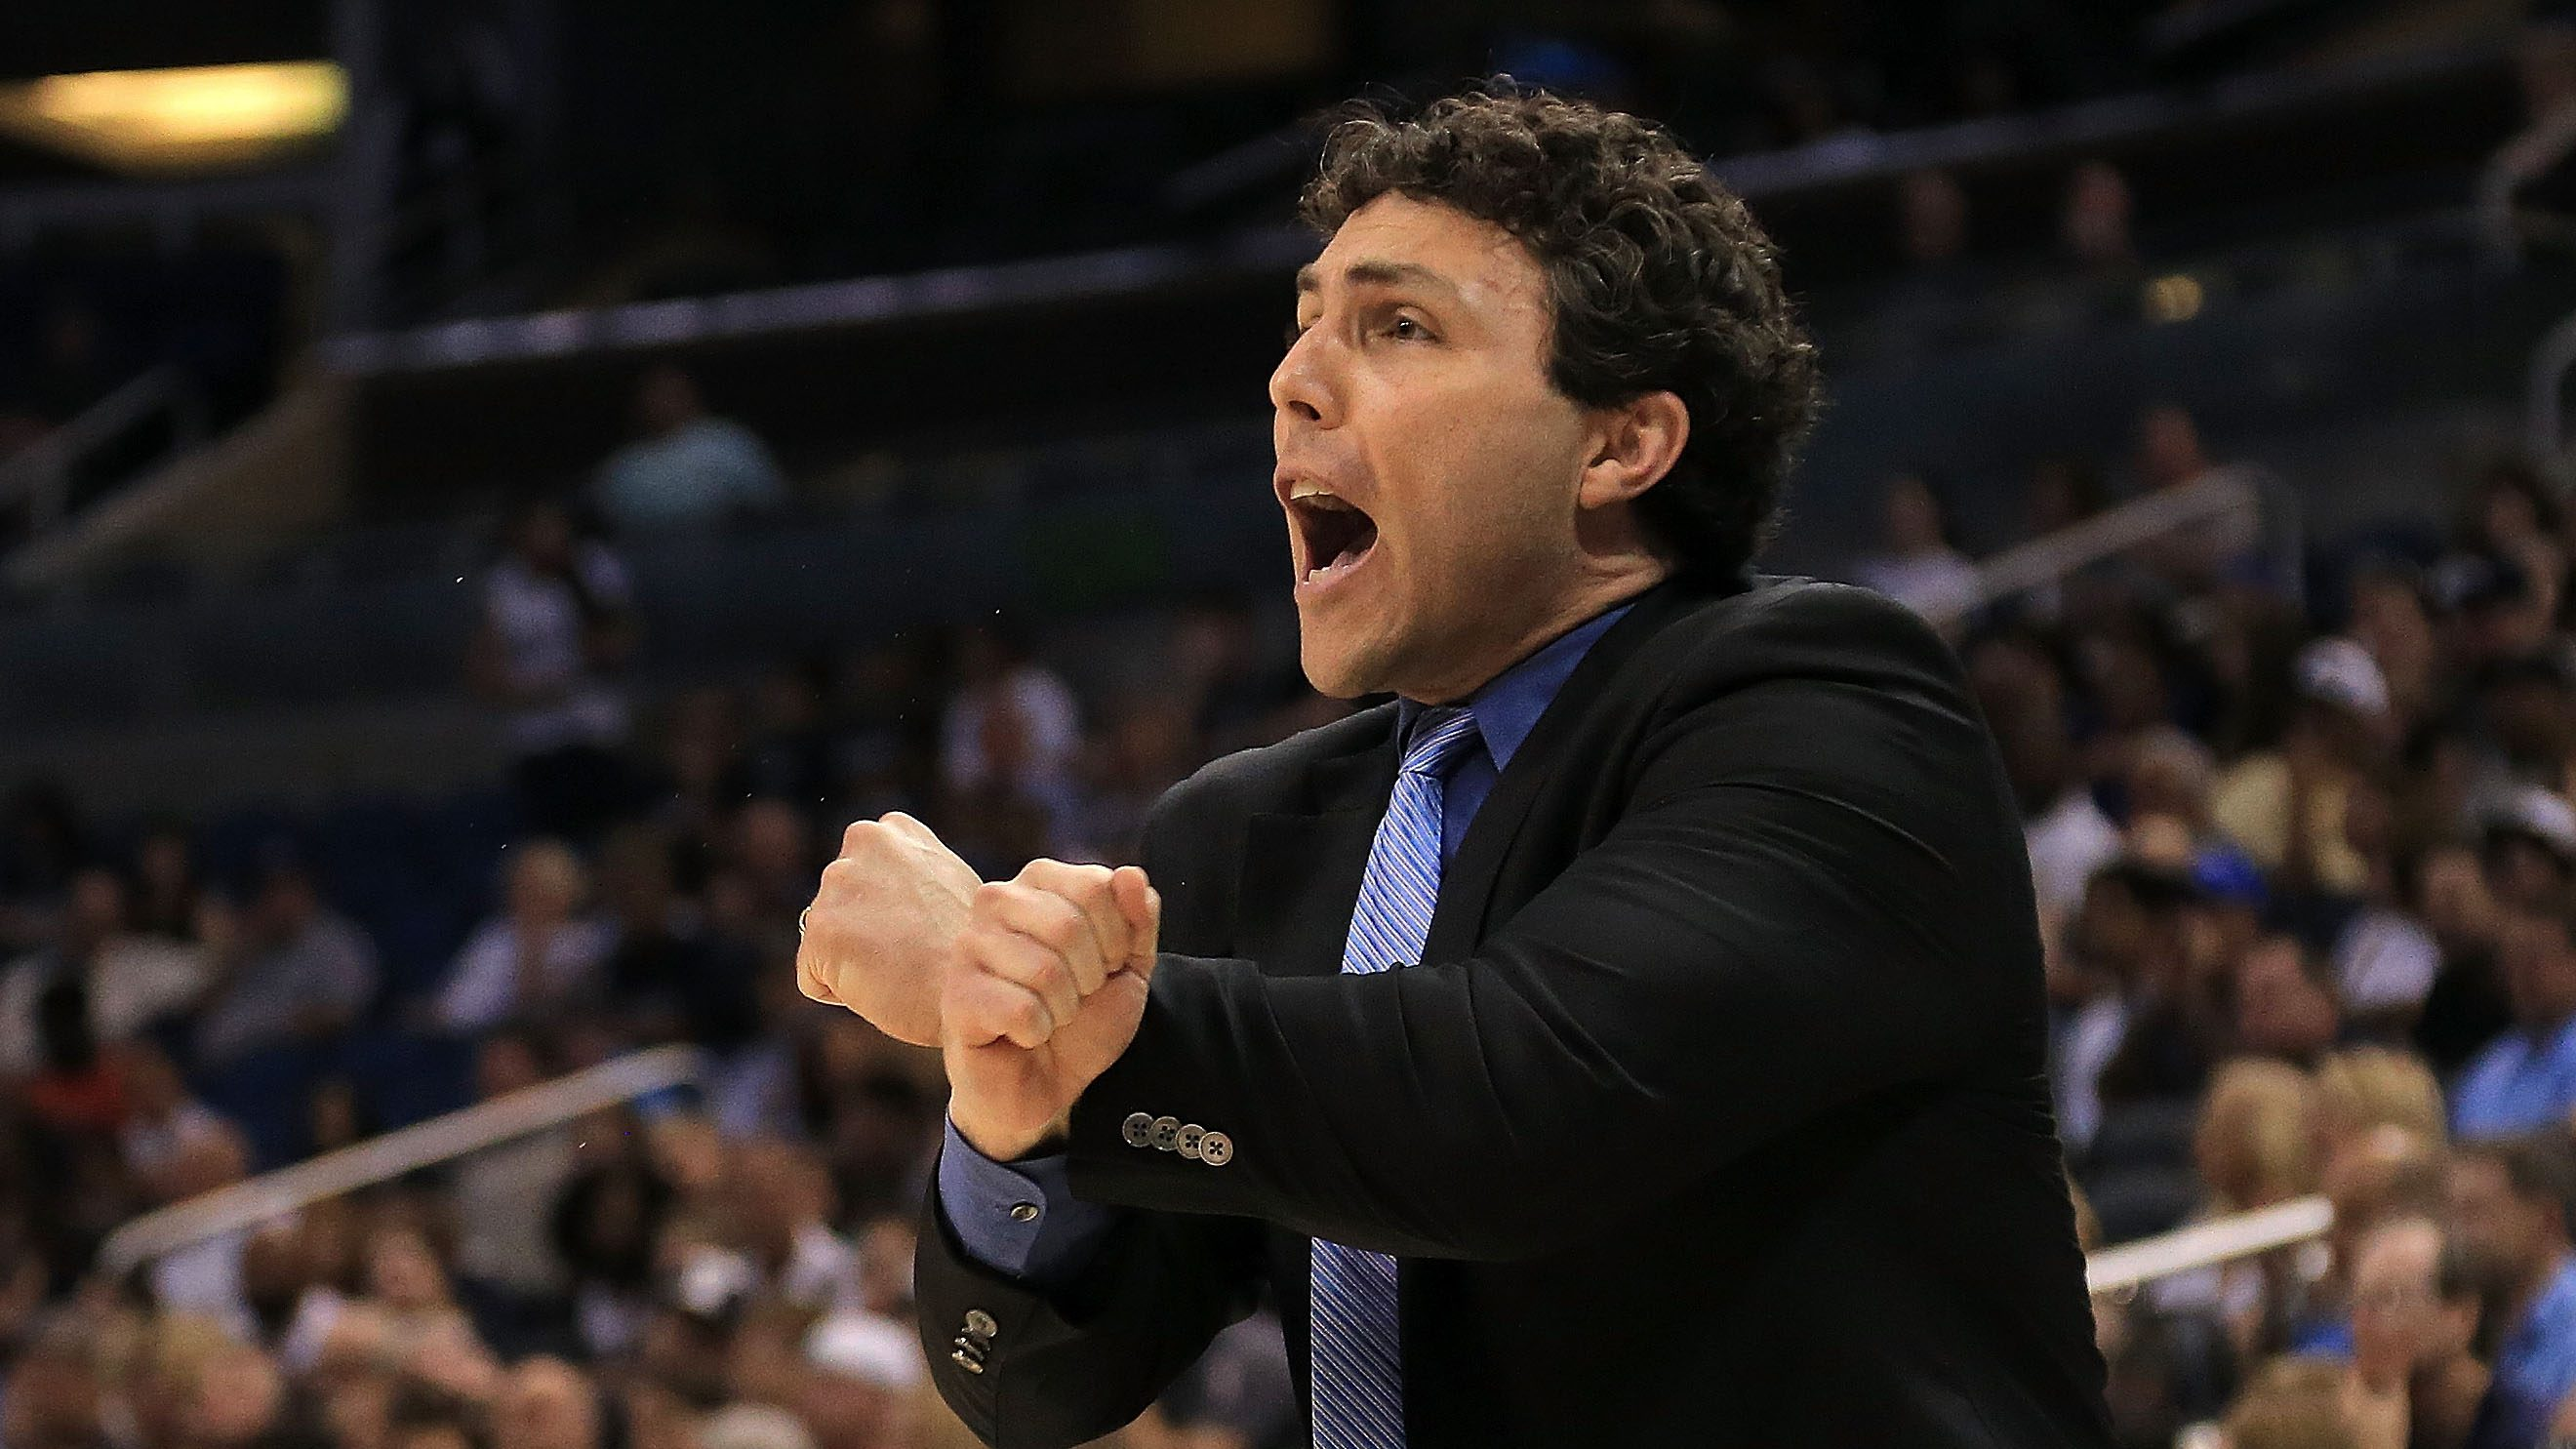 ORLANDO, FL - MARCH 13: Head coach Josh Pastner of the Memphis Tigers calls a play during the Final of the 2016 AAC Basketball Tournament against the Connecticut Huskies at Amway Center on March 13, 2016 in Orlando, Florida. (Photo by Mike Ehrmann/Getty Images)